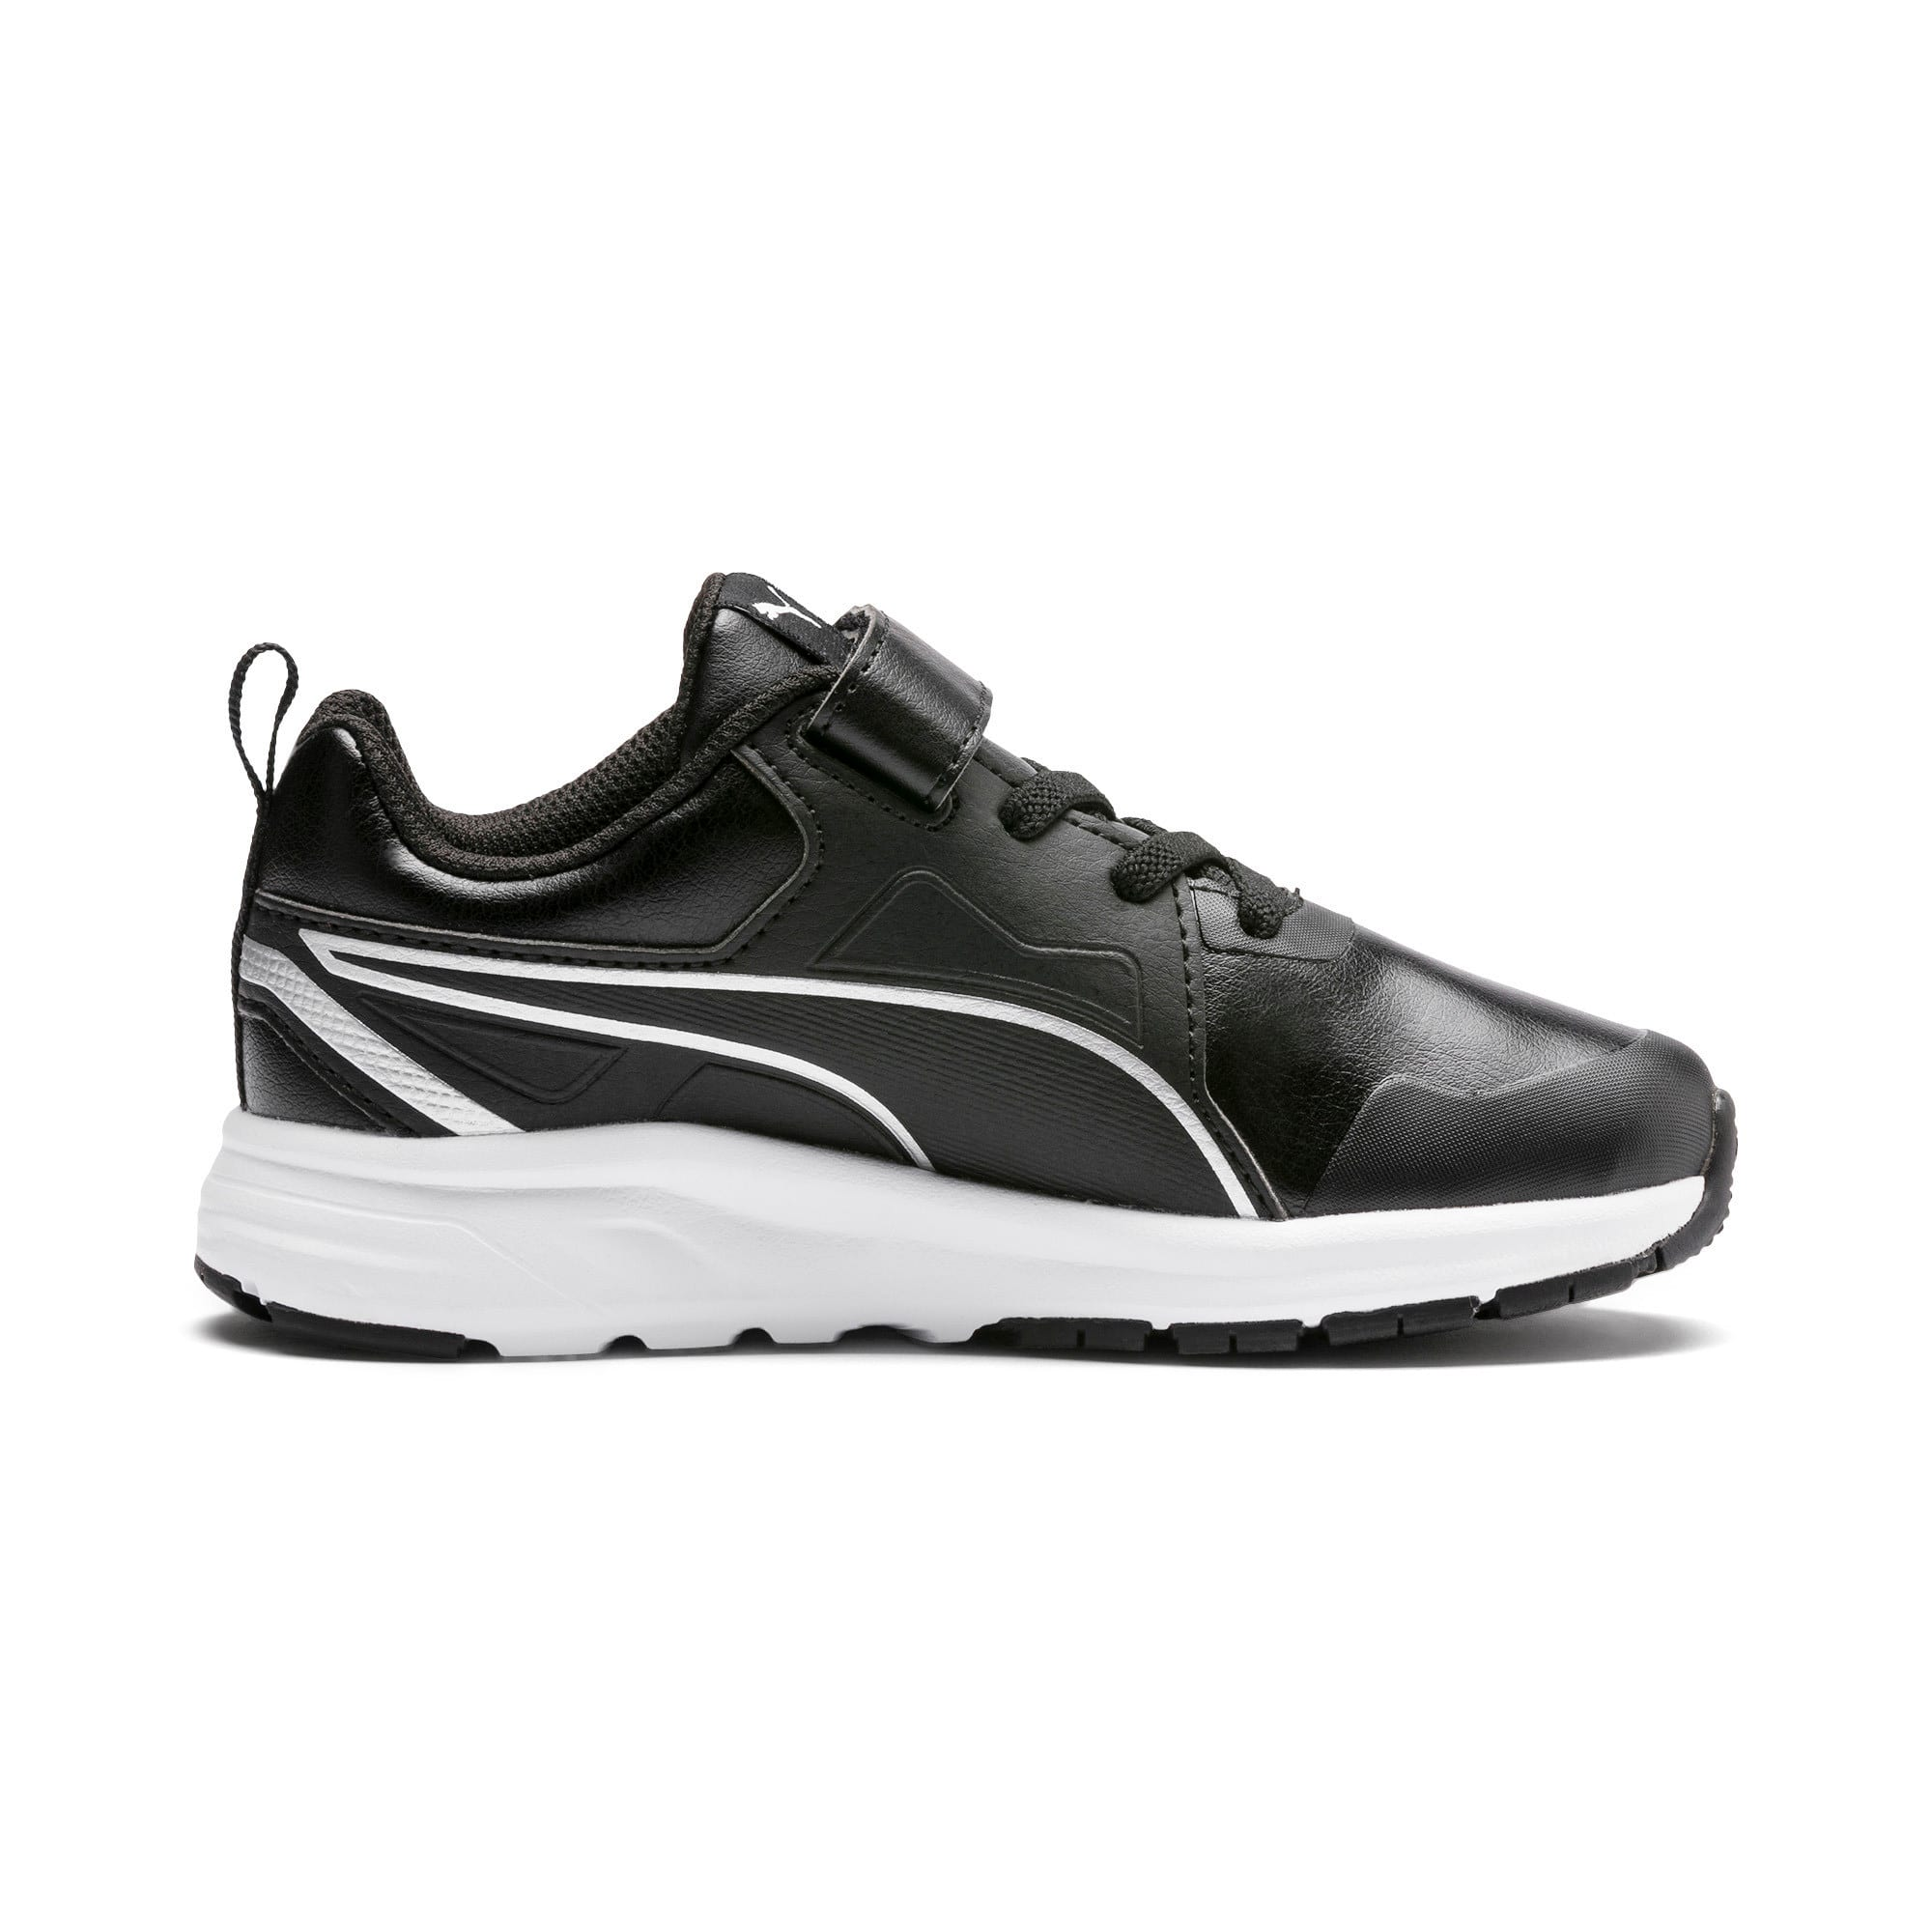 Thumbnail 5 of Pure Jogger SL Kids' Trainers, Puma Black-Puma Silver-White, medium-IND